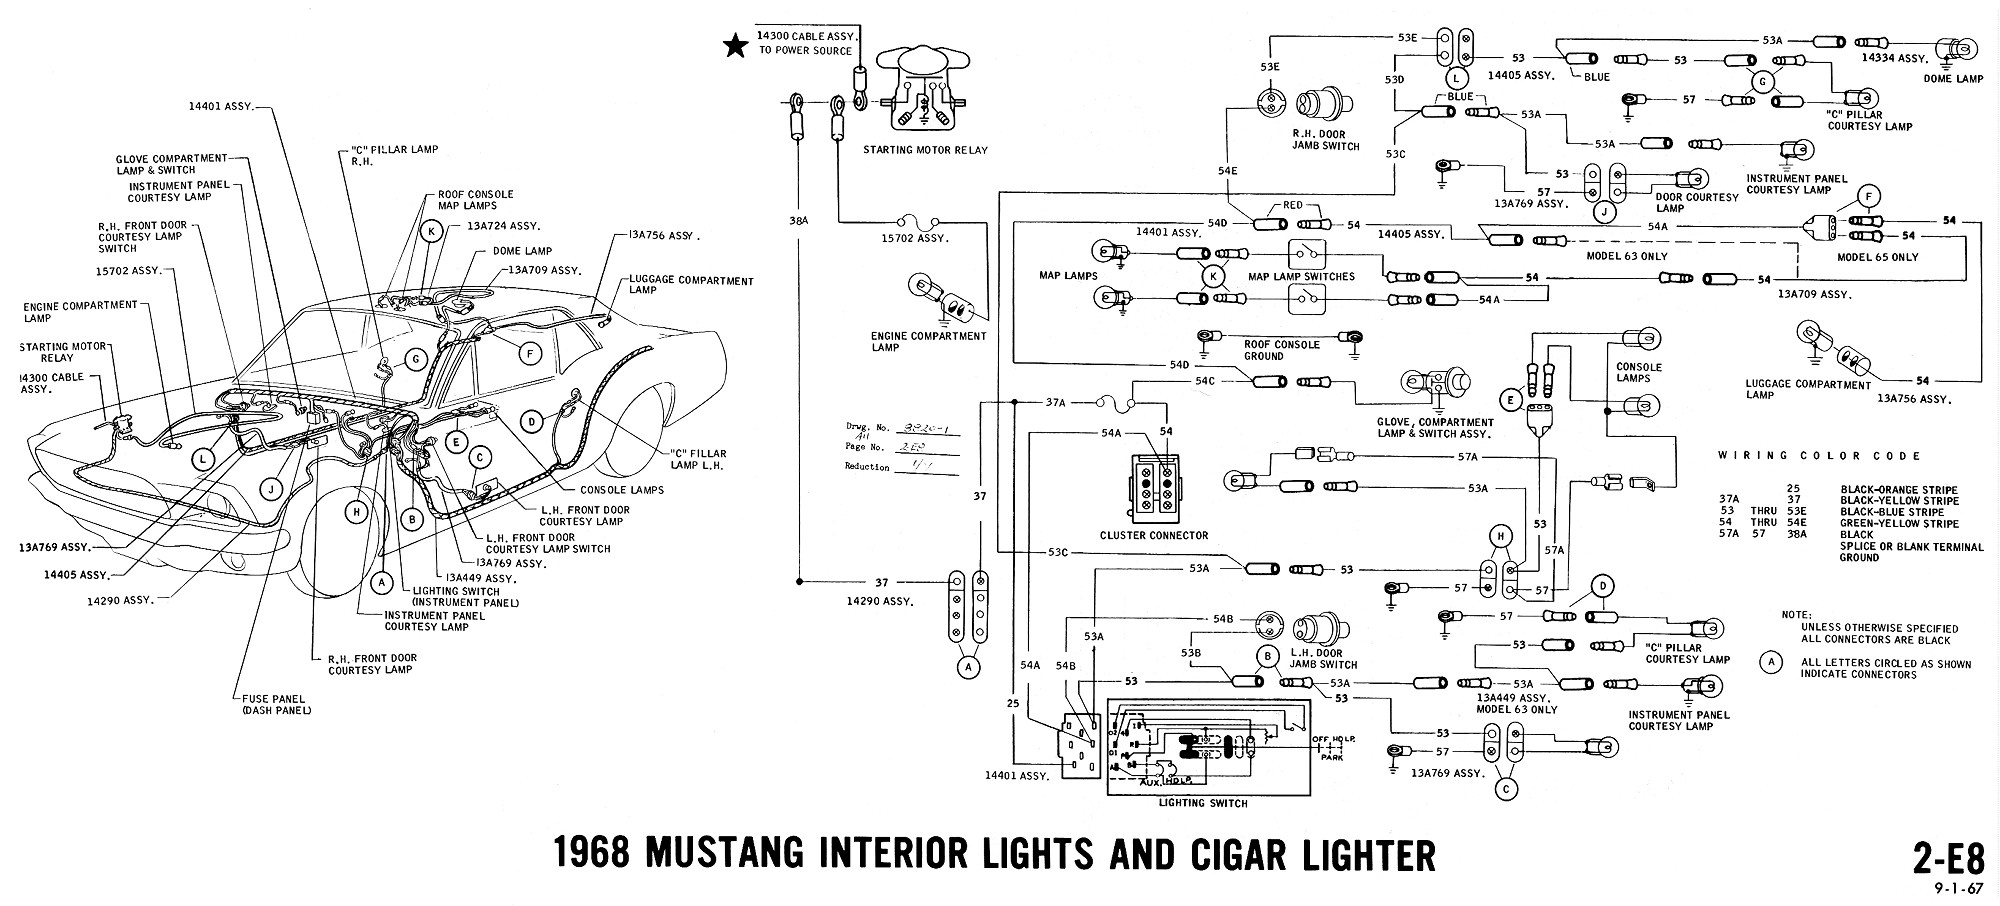 1968 mustang wiring diagram interior lights cigar lighter 1968 mustang wiring diagrams and vacuum schematics average joe